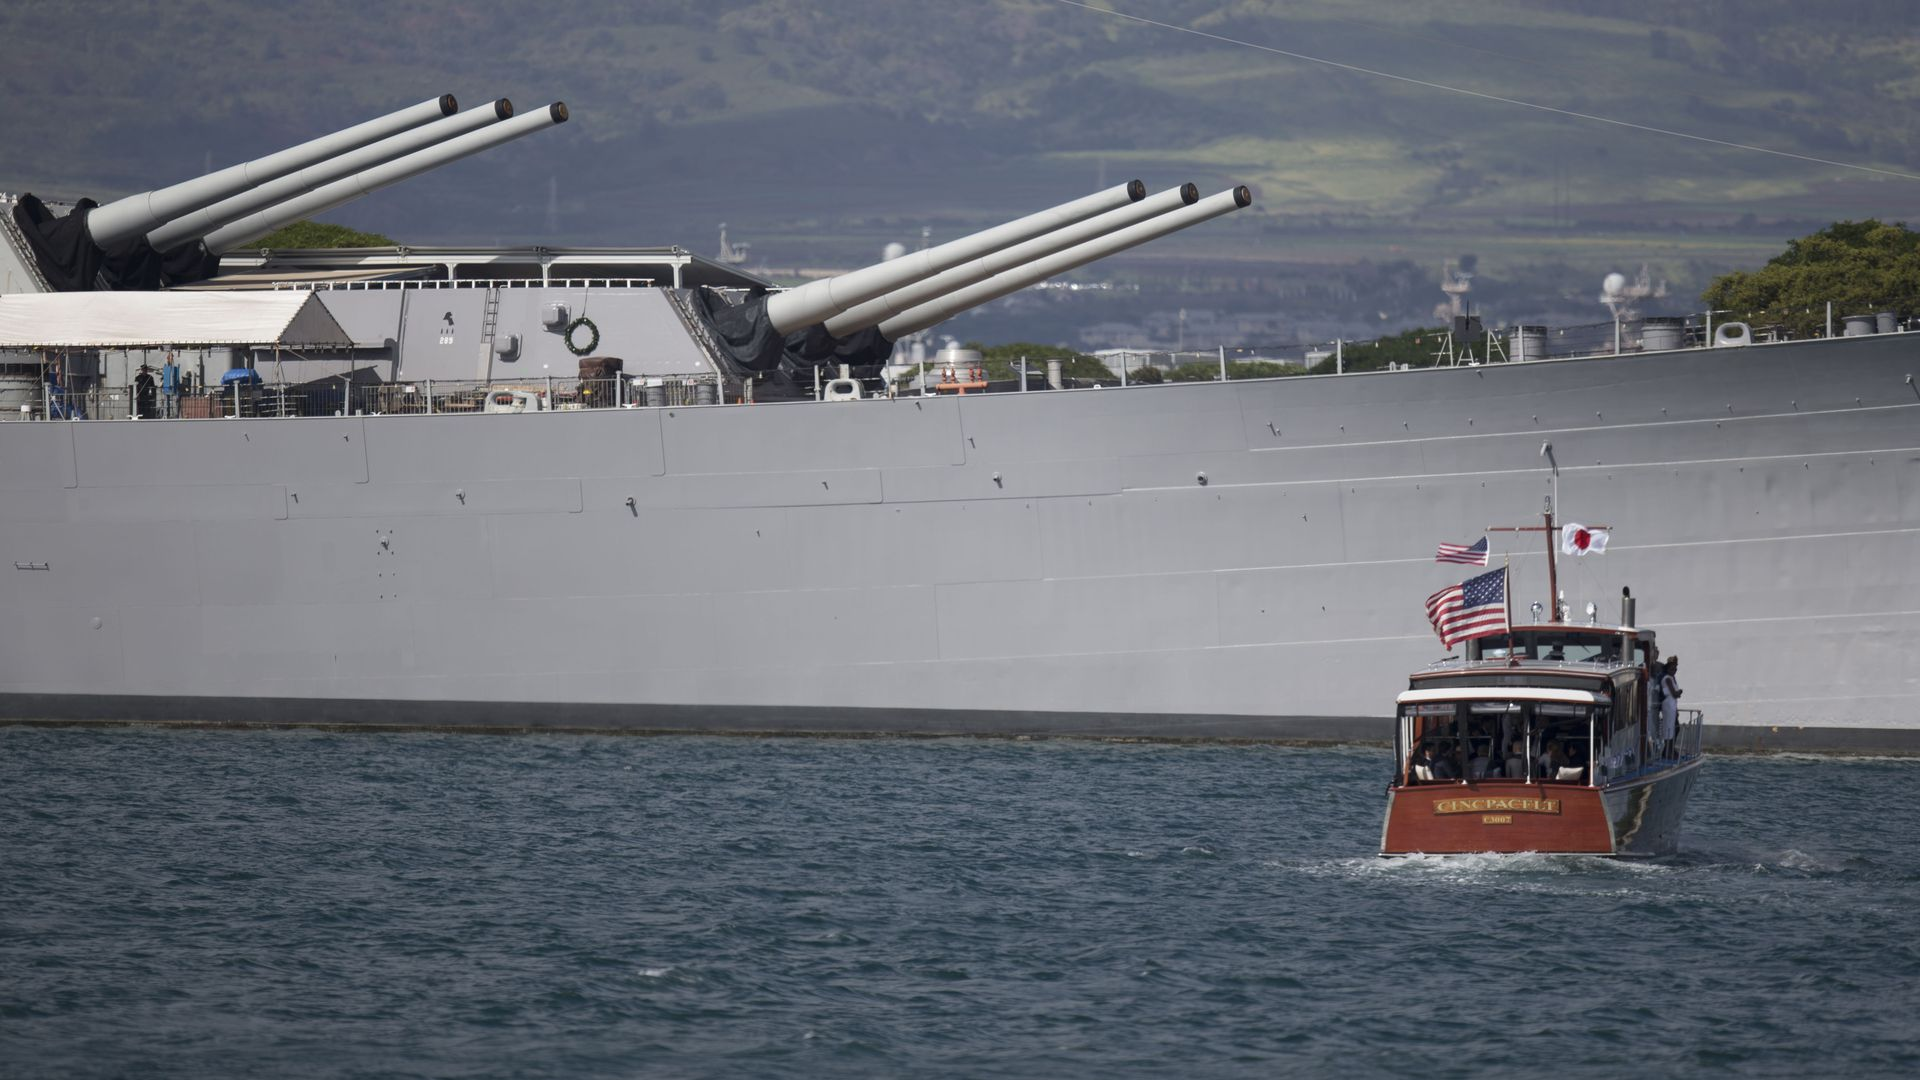 This is an image, from the water, of the base and gun stations in Hawaii